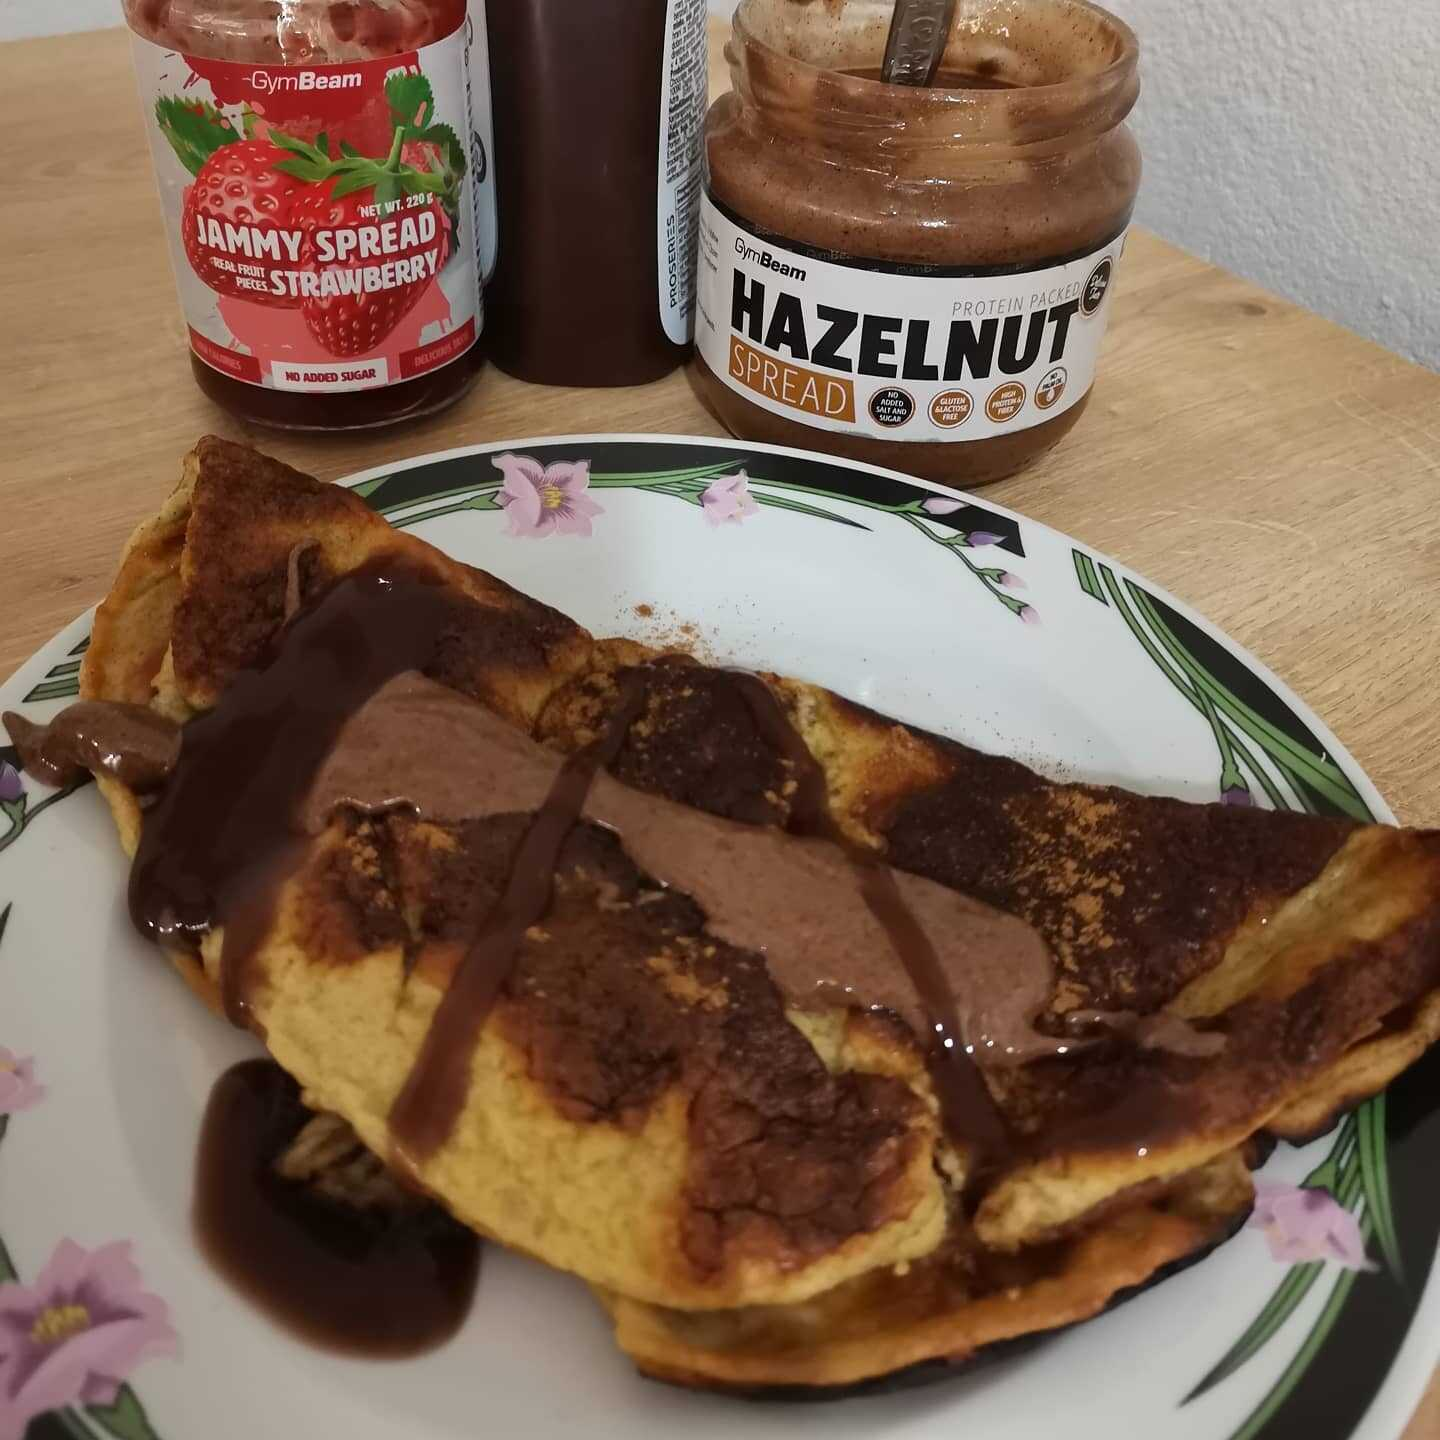 Low carb palacinka